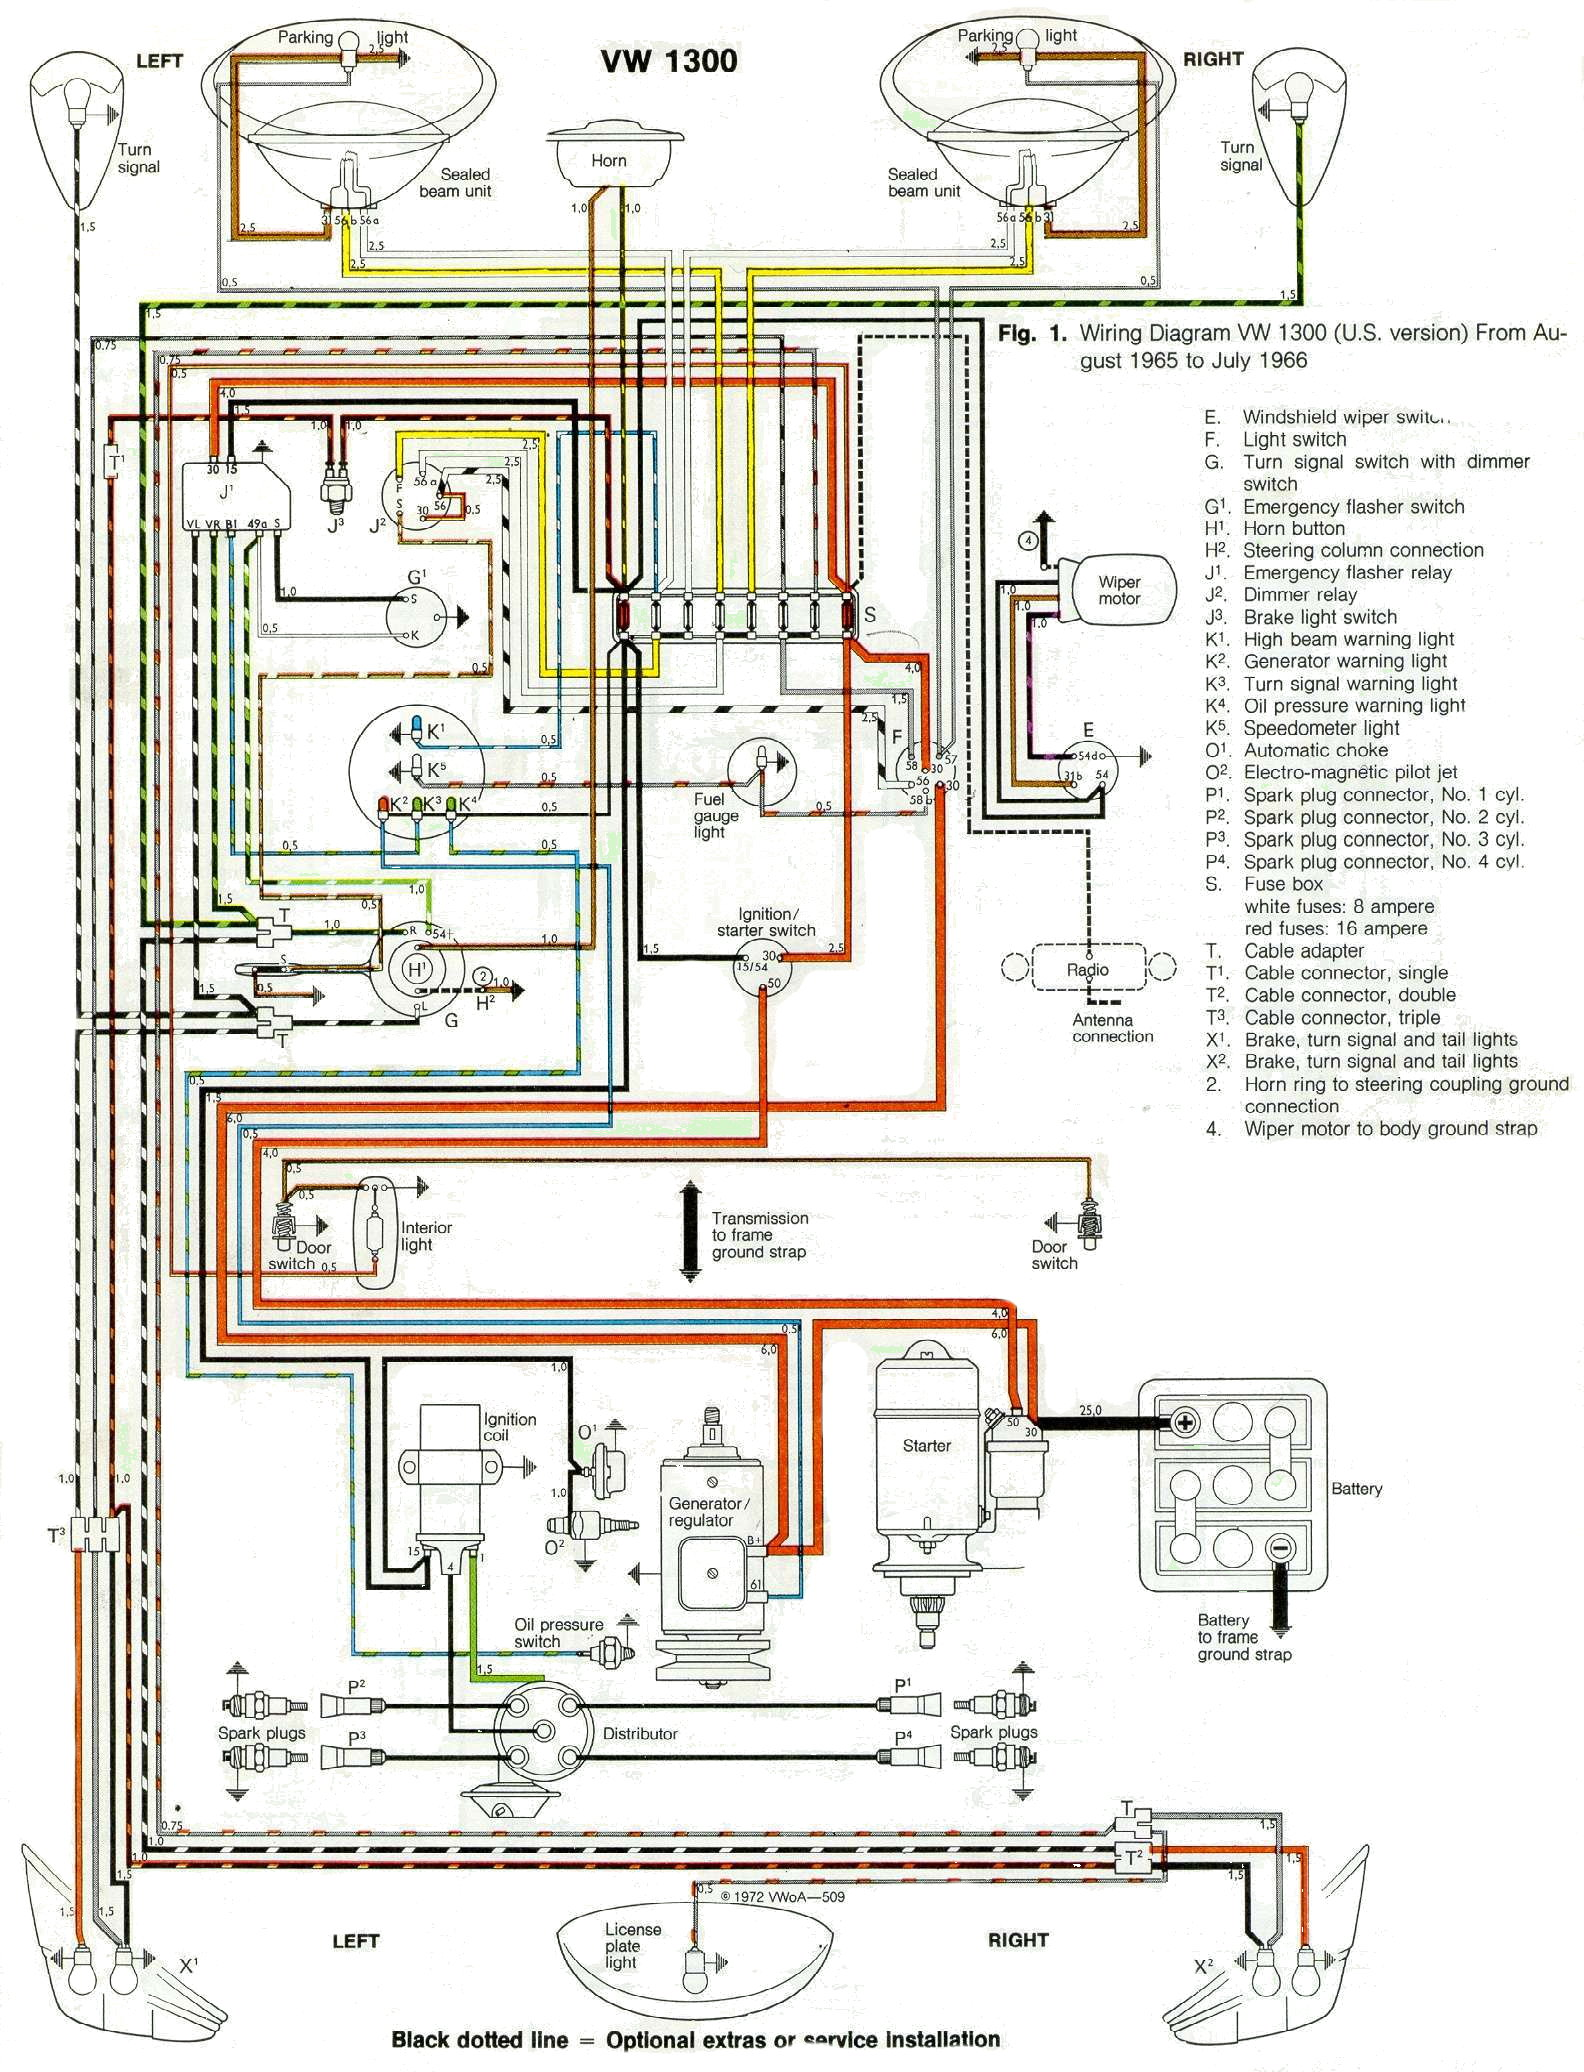 1966 Wiring 67 vw bus wiring harness 71 vw wiring harness \u2022 wiring diagrams Wiring Harness Diagram at crackthecode.co